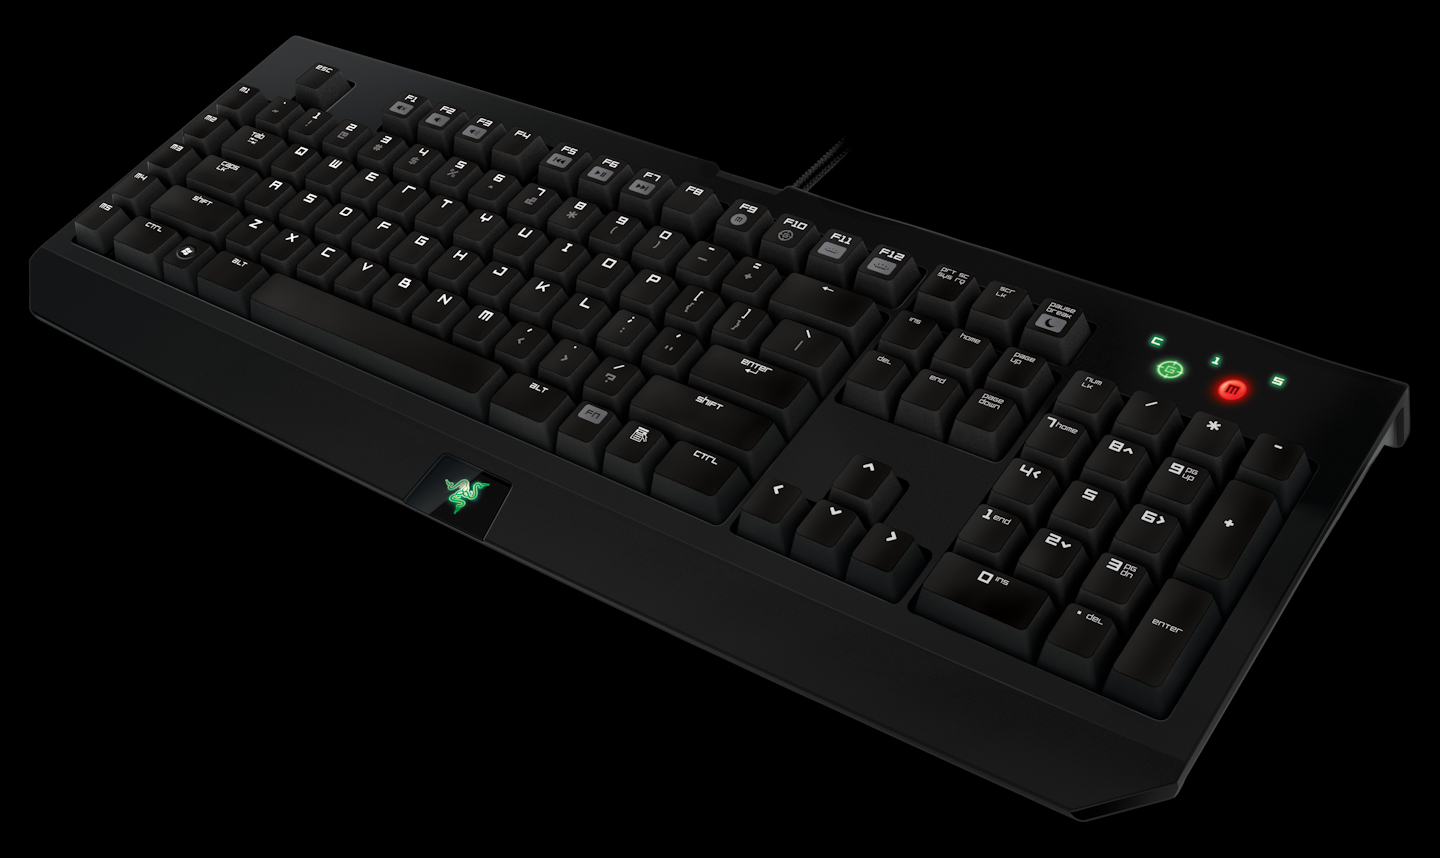 Razer Unveils Blackwidow Tournament Mechanical Keyboard, Updates BlackWidow Series | Custom PC ...